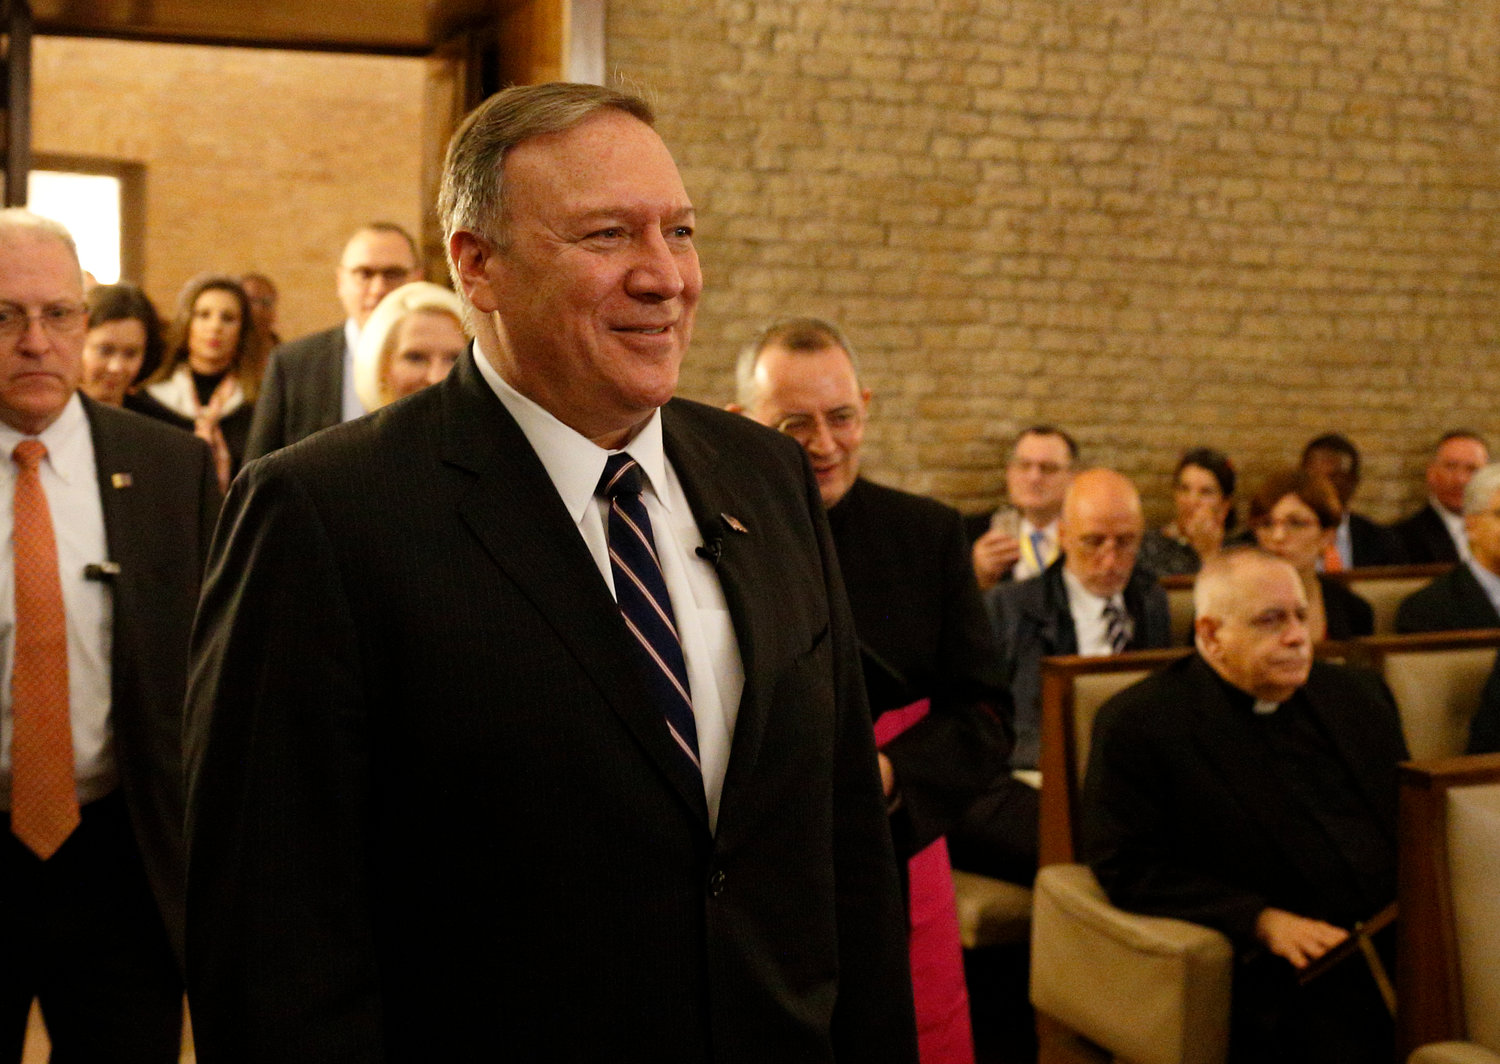 U.S. Secretary of State Mike Pompeo arrives to speak at a symposium sponsored by the U.S. Embassy to the Holy See at the Vatican Oct. 2, 2019. The symposium focused on areas of collaboration between the U.S. and the Vatican including the causes of advancing religious freedom and fighting against human trafficking.